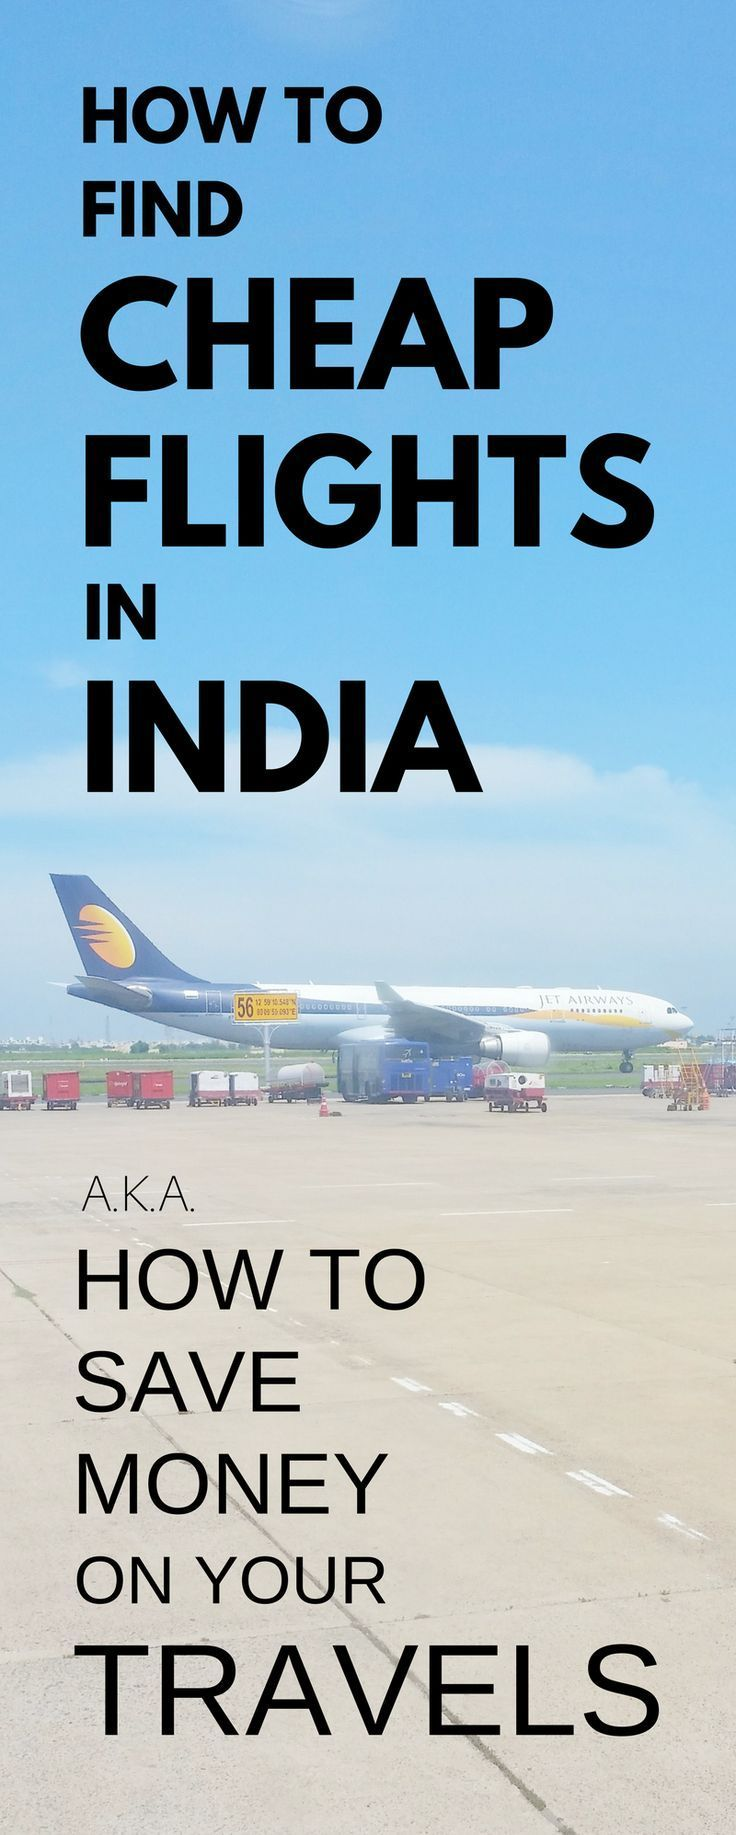 India Travel Tips, Asia: How to book cheap flights in India. Weeks long backpacking Asia. Plane tickets instead of train, booking site for travel hacking. Find best time to fly. Things to do in India even if on budget. Checklist along with list of what to pack, what to wear in India. International travel ideas, world adventures, bucket list destinations! Trips to Mumbai, Delhi, Rajasthan, Jaipur, Amritsar, Kerala, North India, South India! Save money for travel. #india #indiatips #traveltips